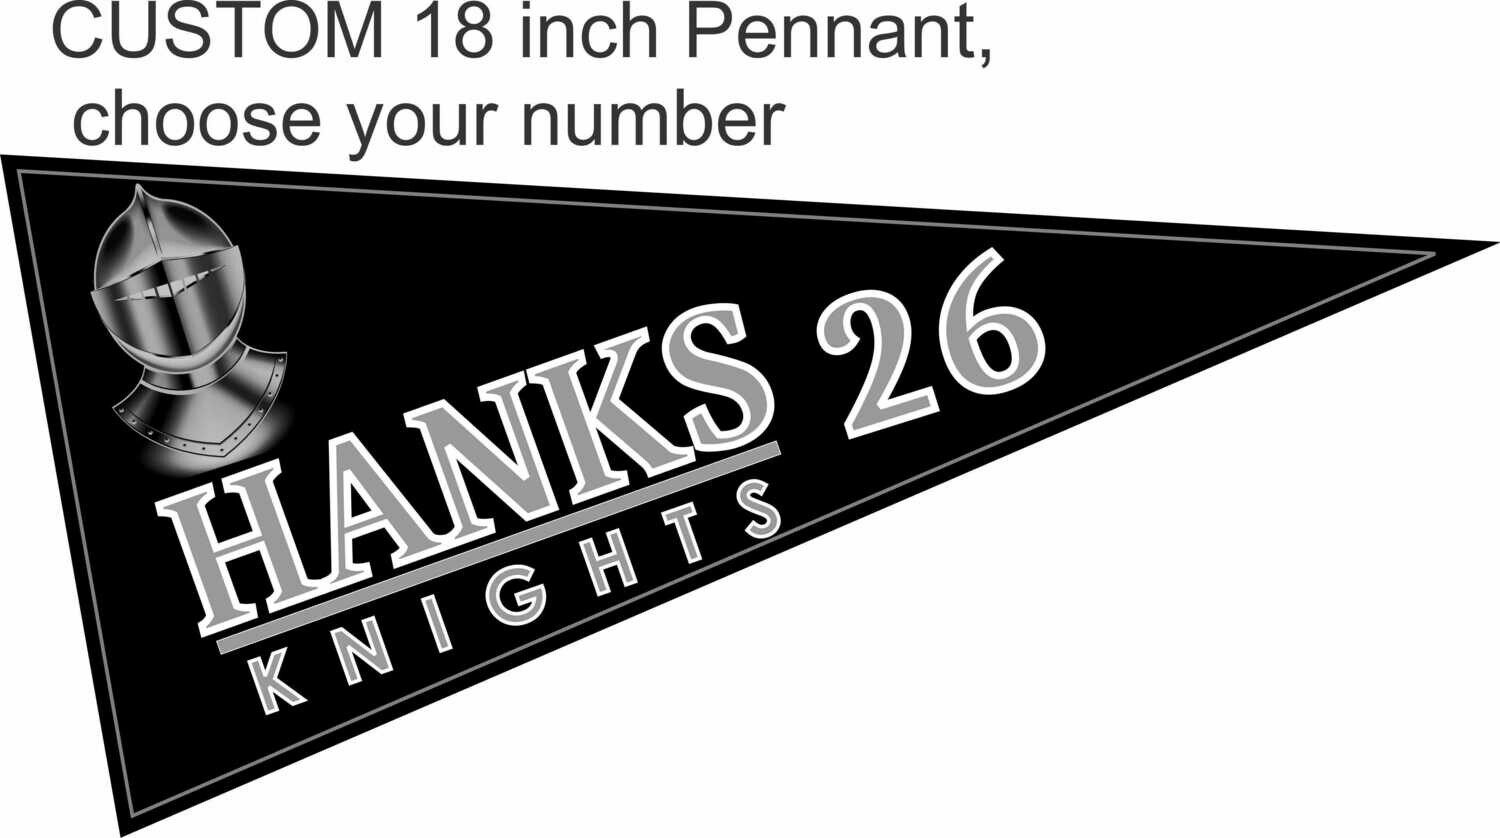 Hanks Knights Custom Pennant